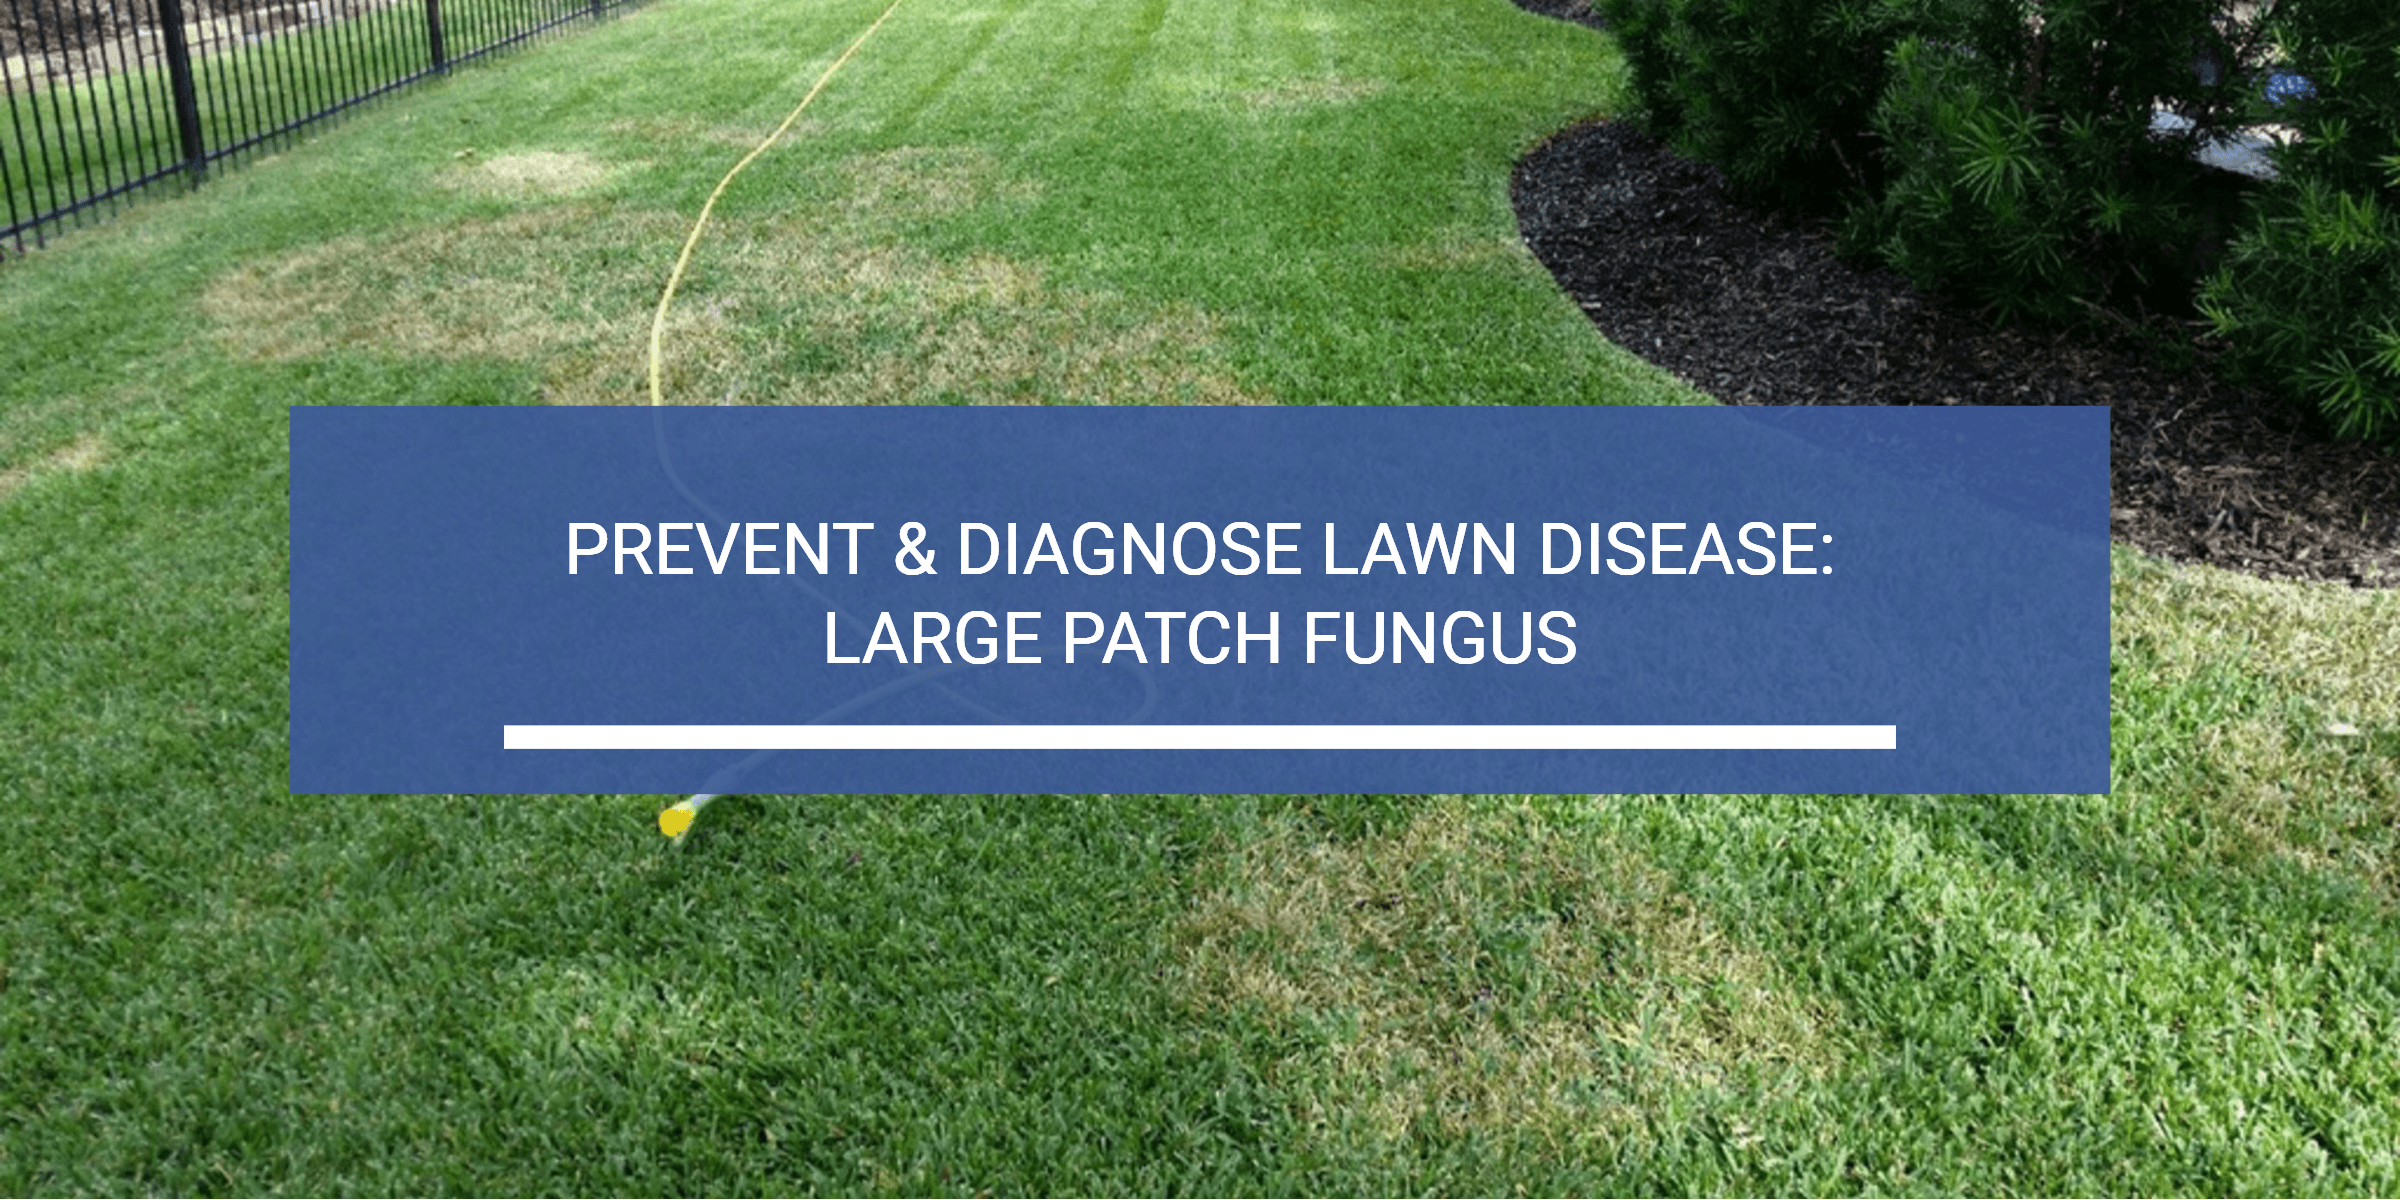 Lawn Disease Diagnosis and Prevention